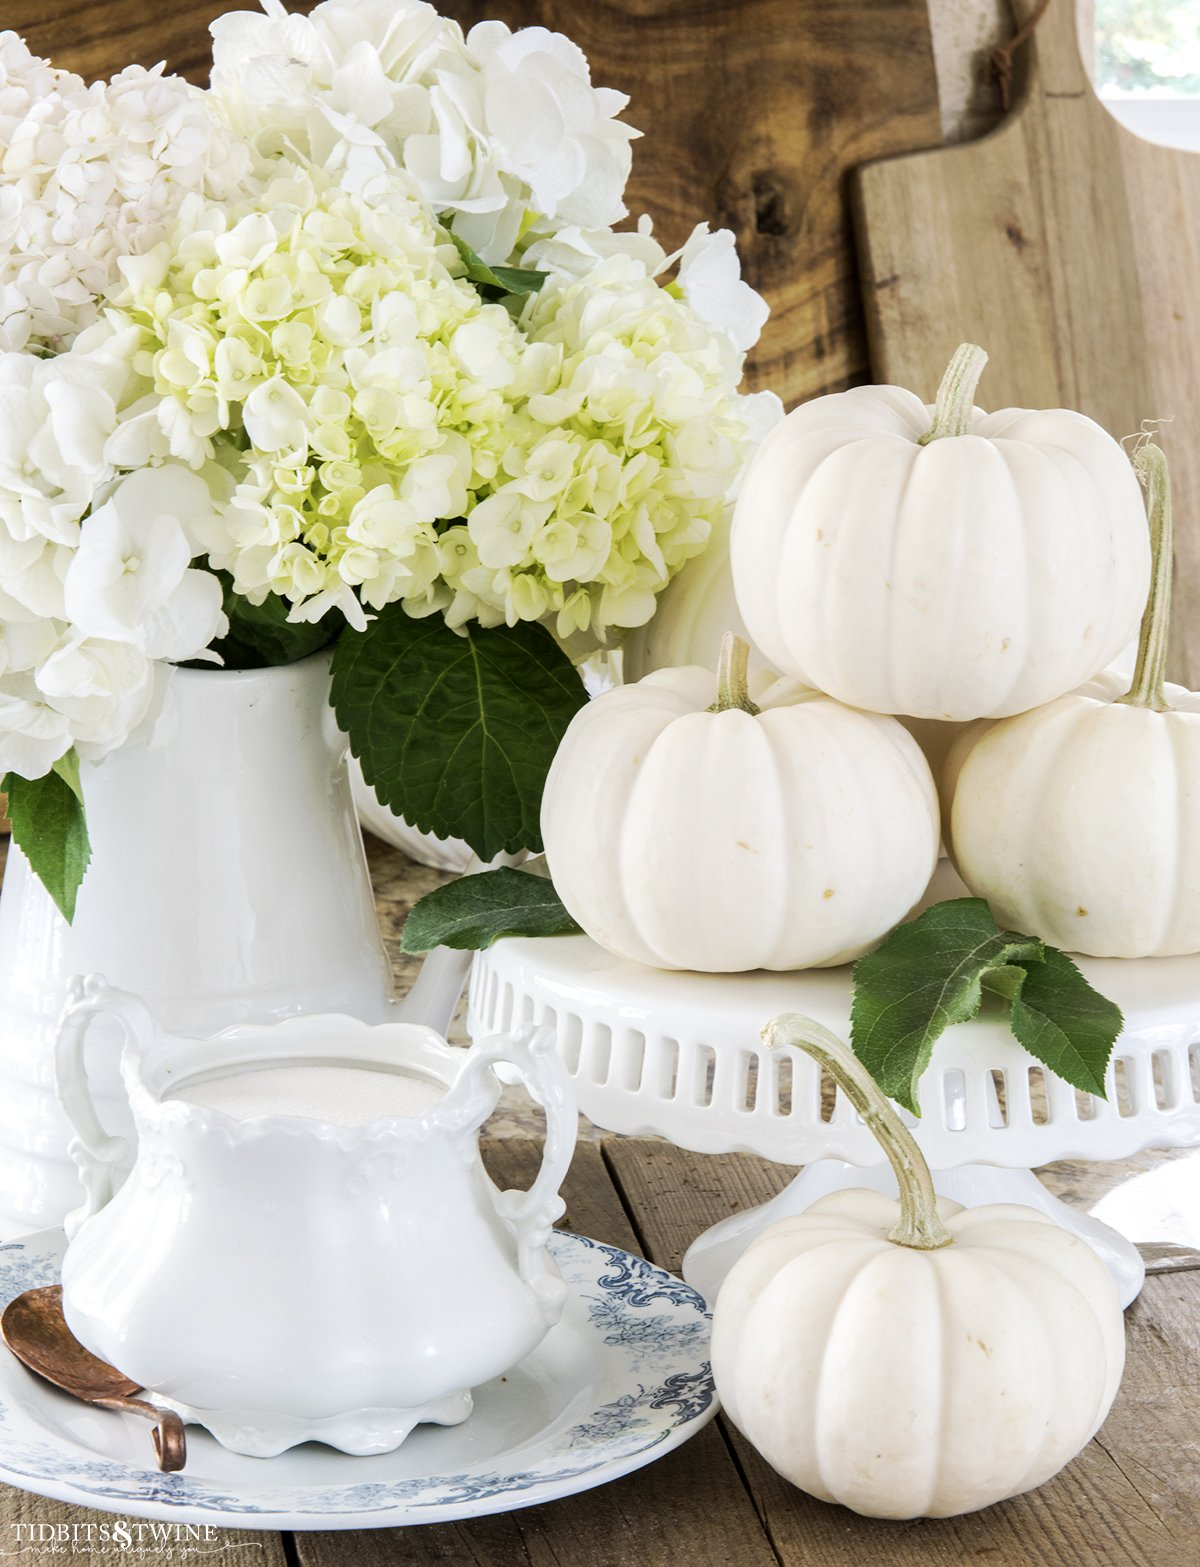 vignette with white pumpkins on a cake stand and white pitcher with white hydrangea and transferware with ironstone sugar bowl